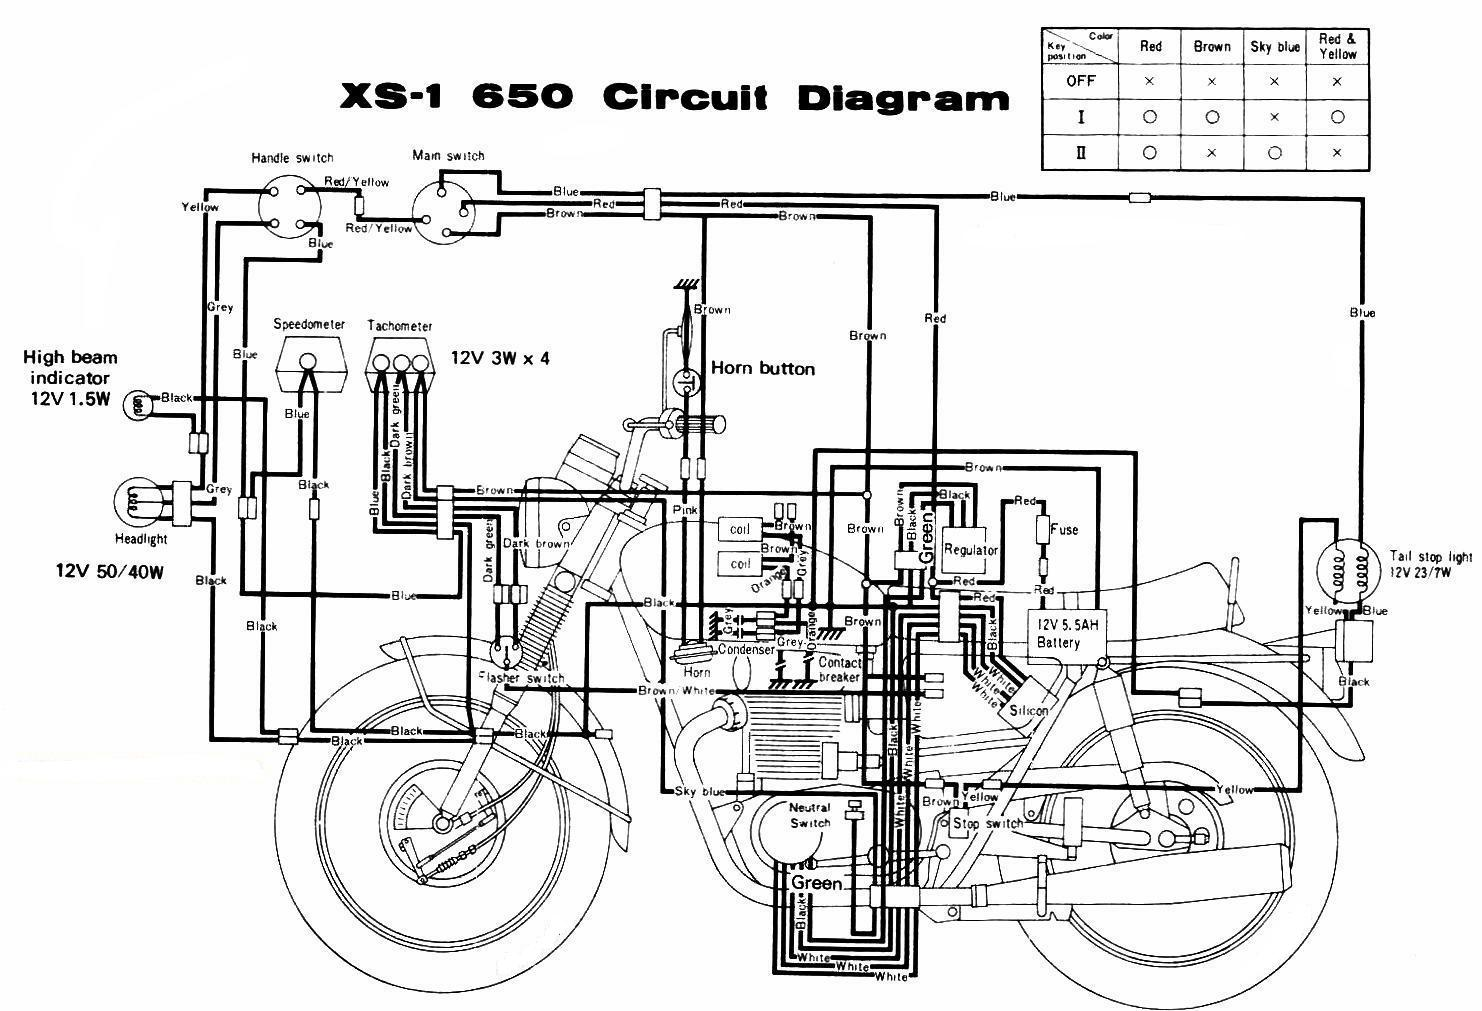 T500 Motorcycle Wiring Diagram List Of Schematic Circuit Suzuki Diagrams Rh Oregonmotorcycleparts Com